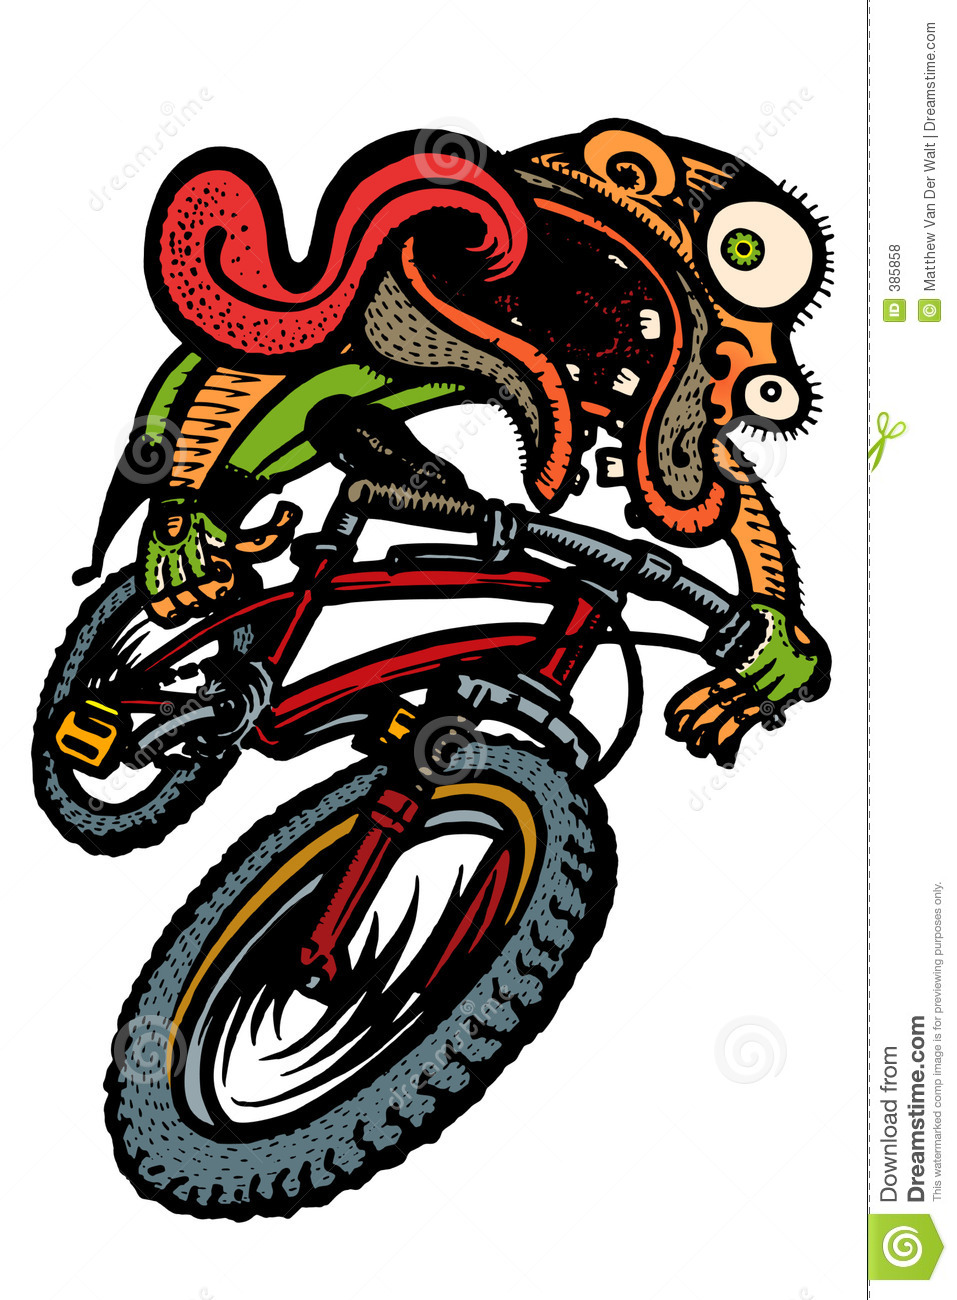 Wipe out guy stock illustration of cartoon